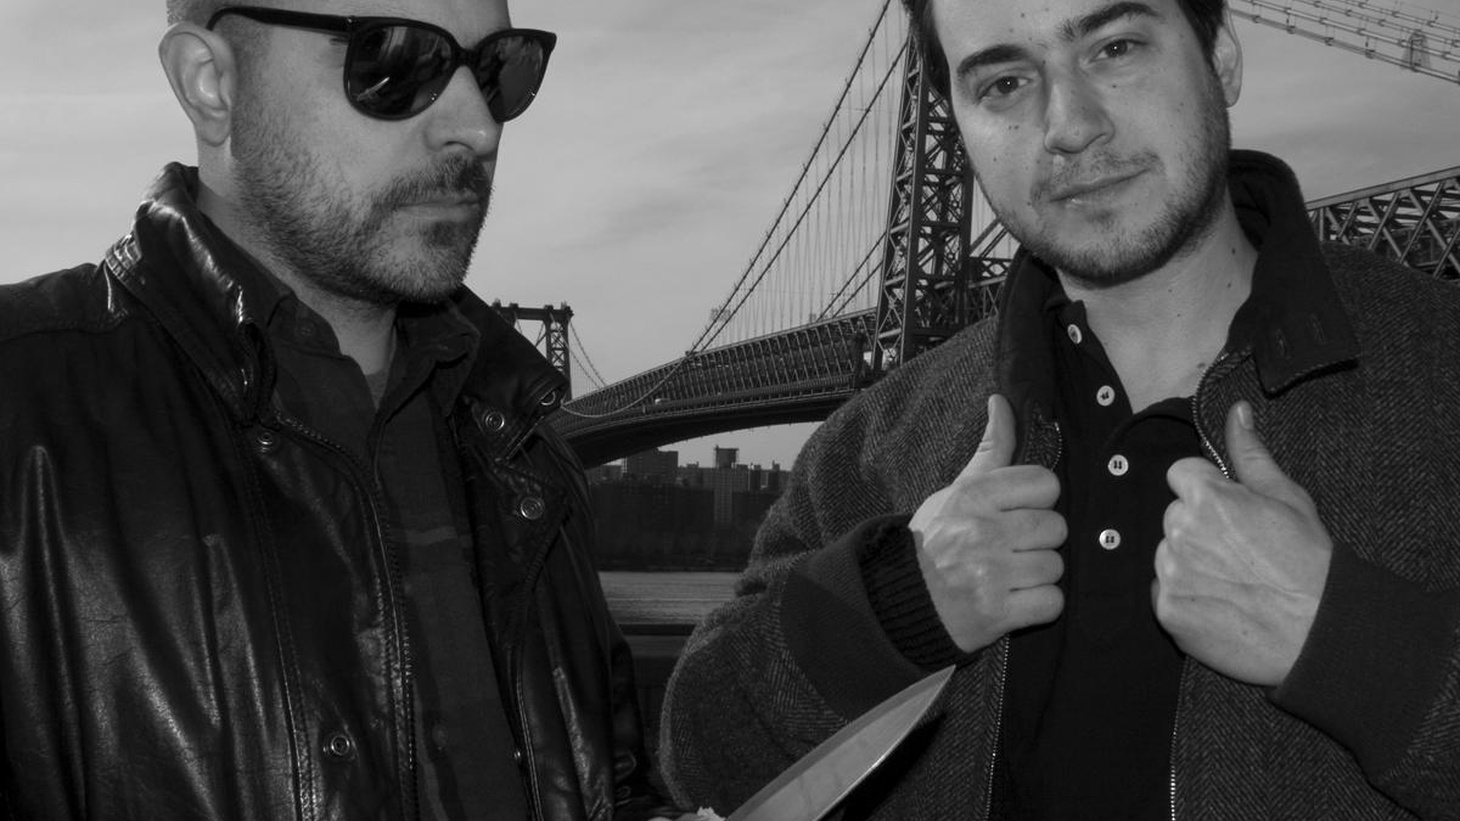 """Runaway is the collaboration between DJs Jacques Renault and Marcos Cabral, whose tribal disco house sound is so sincere, intense, and DIY that they've been a key ingredient in DFA's second wave. Their """"Brooklyn Club Jam"""" single was widely-considered one of 2008's sickest bangers, 2009 found them remixing a slew of tracks, and 2010 will see the arrival of their debut album."""